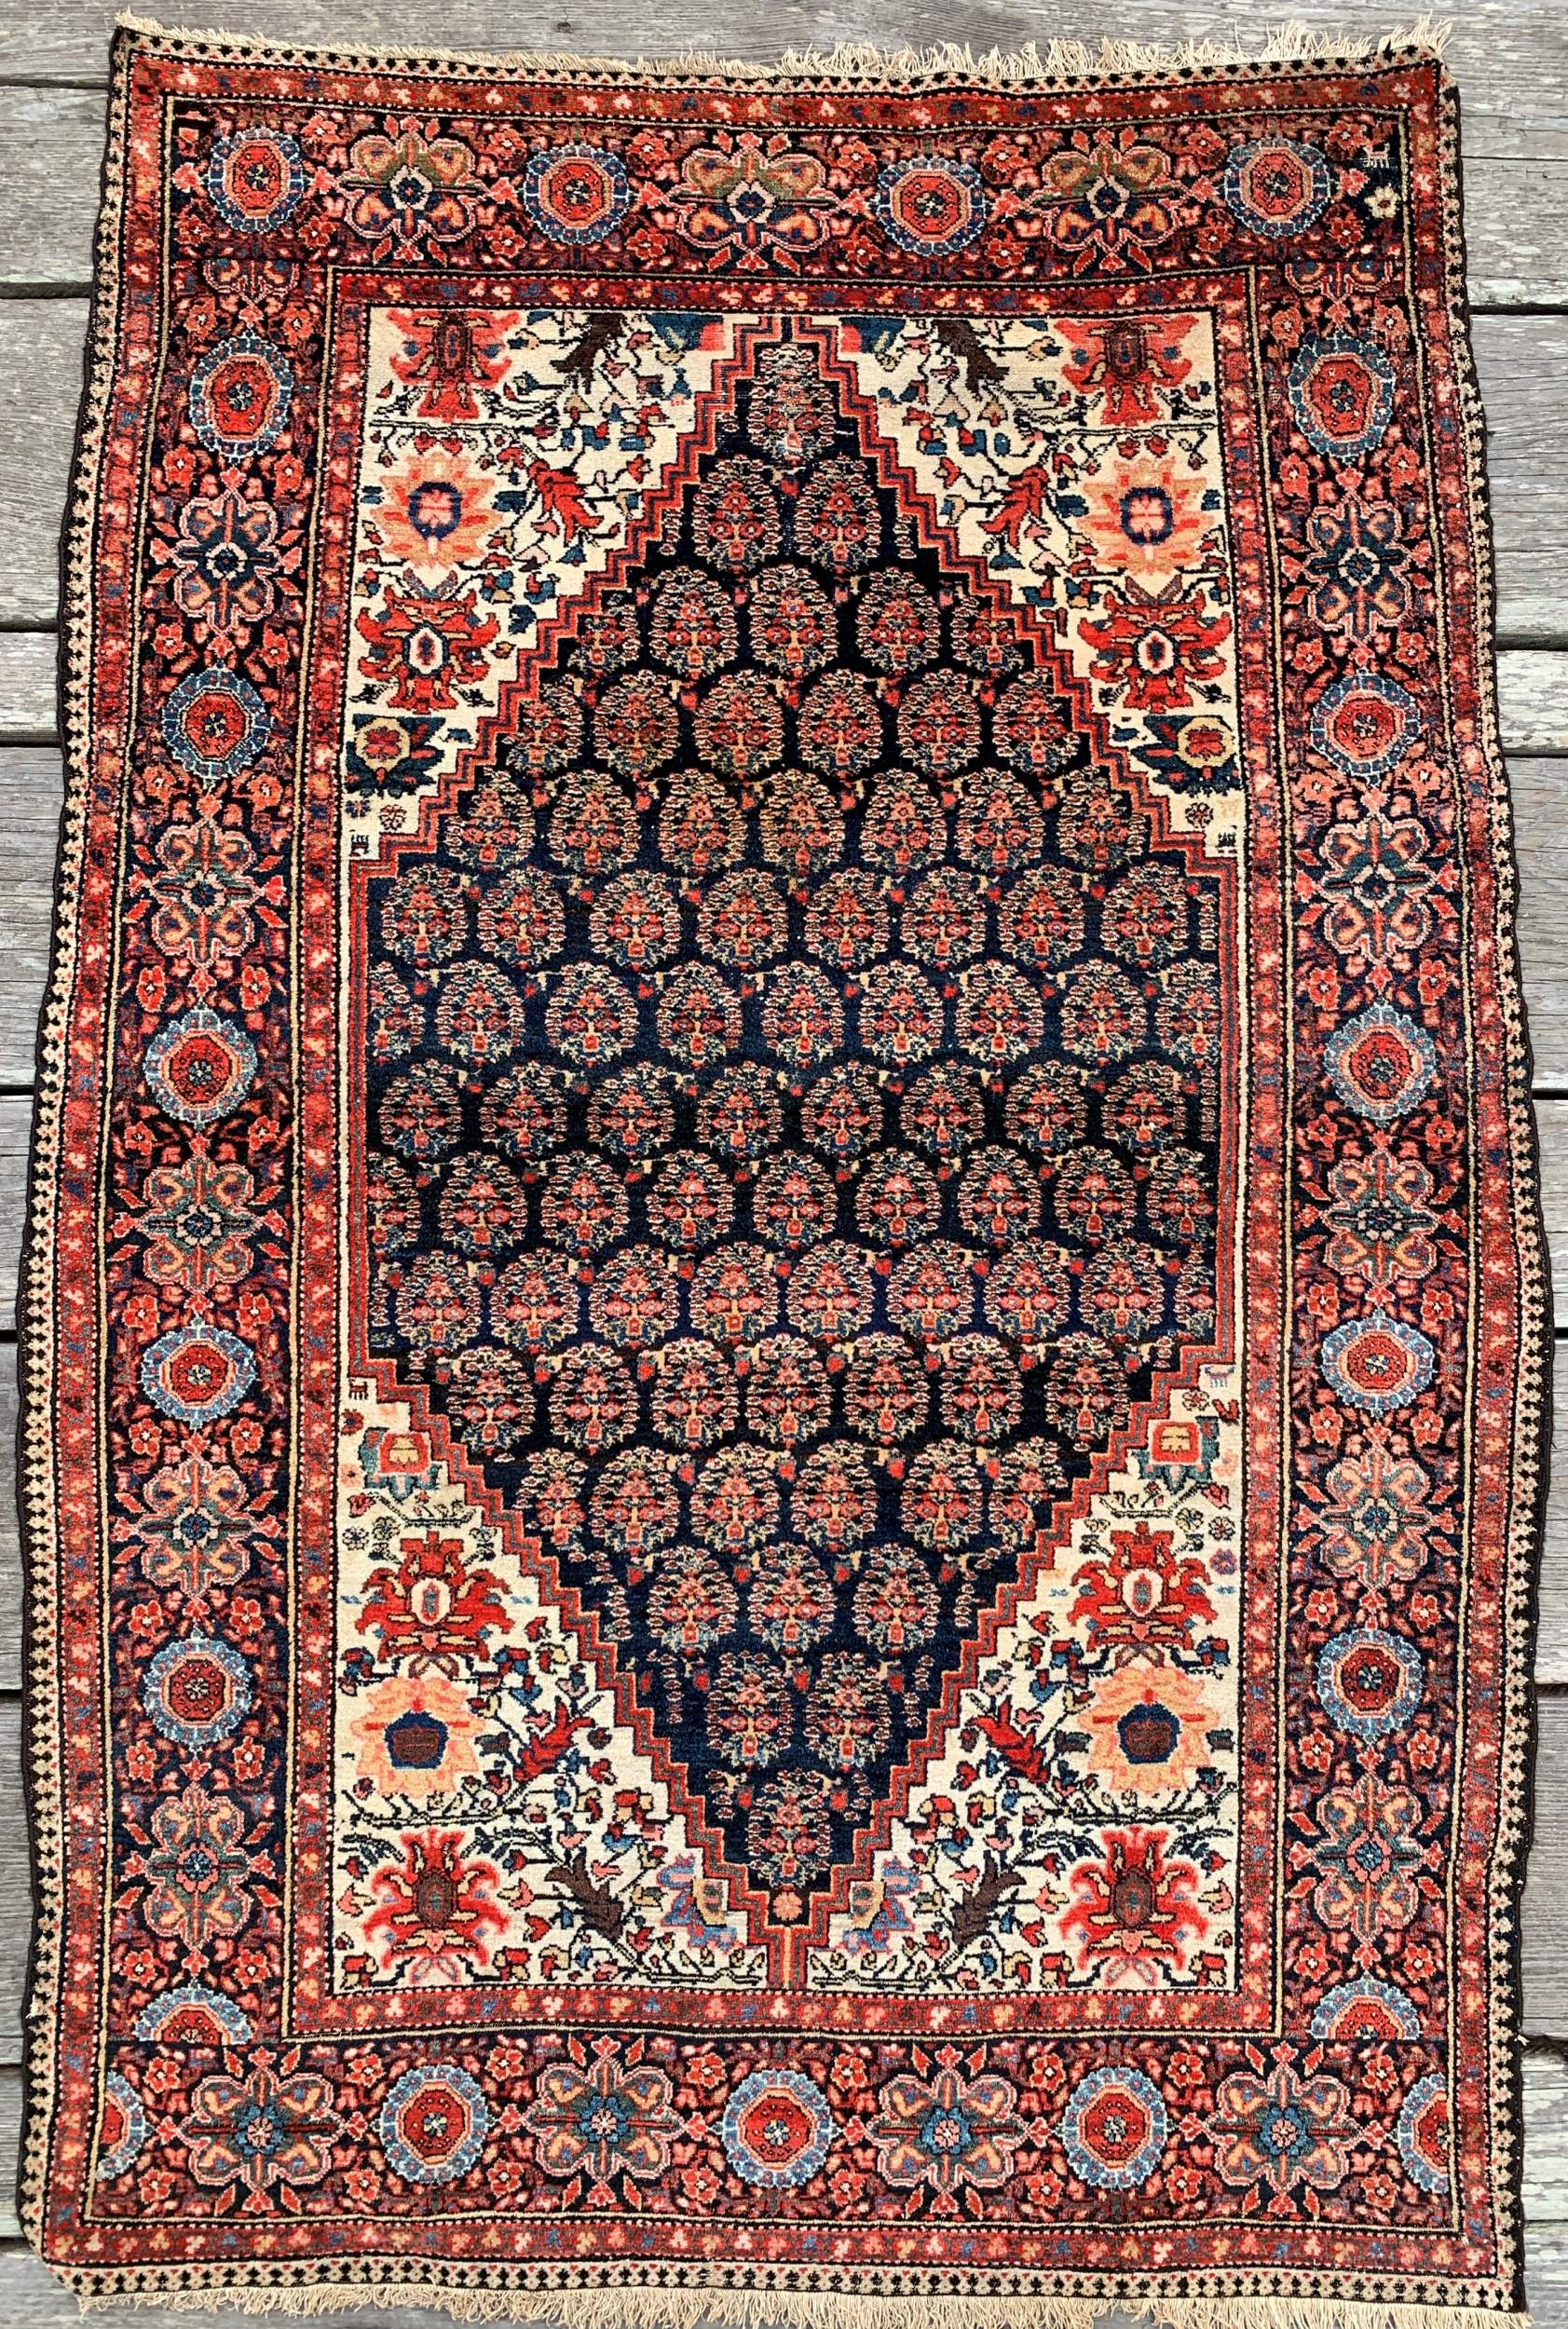 Steelman Rugs Antique Persian Malayer Rug 4 1 X 6 4